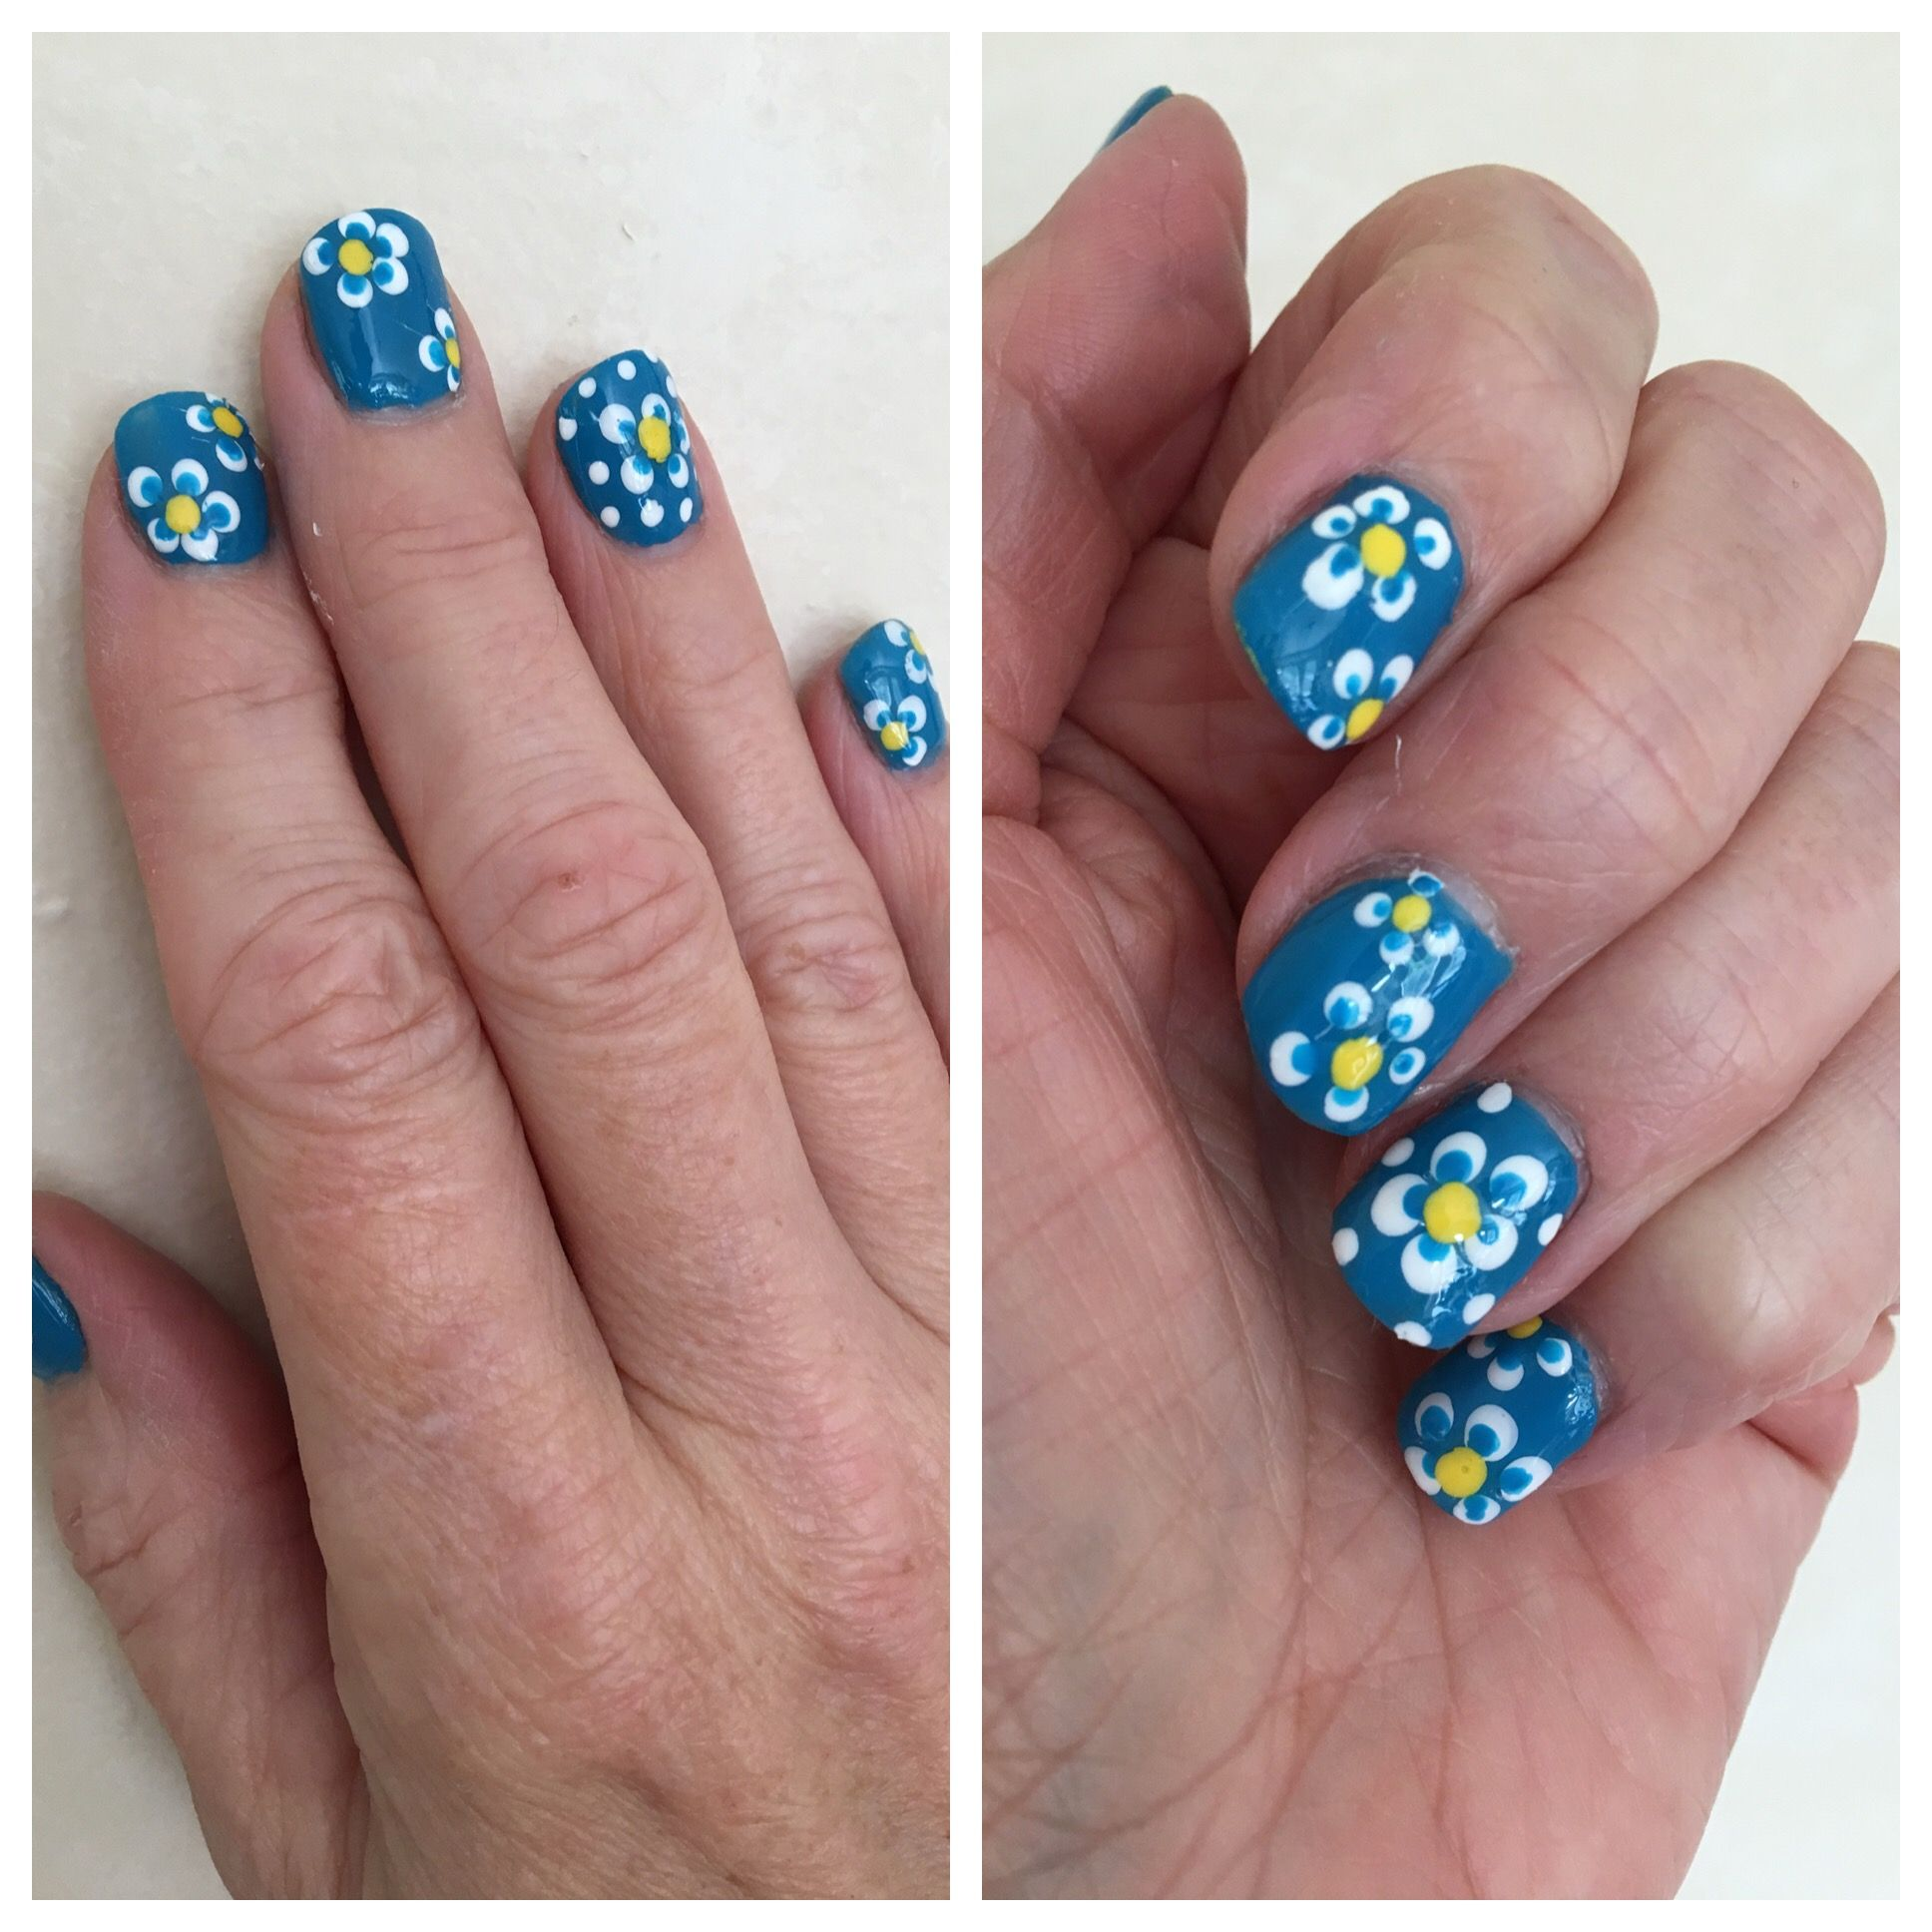 Dotting tool daisies on blue background nail design | Nails I\'ve ...